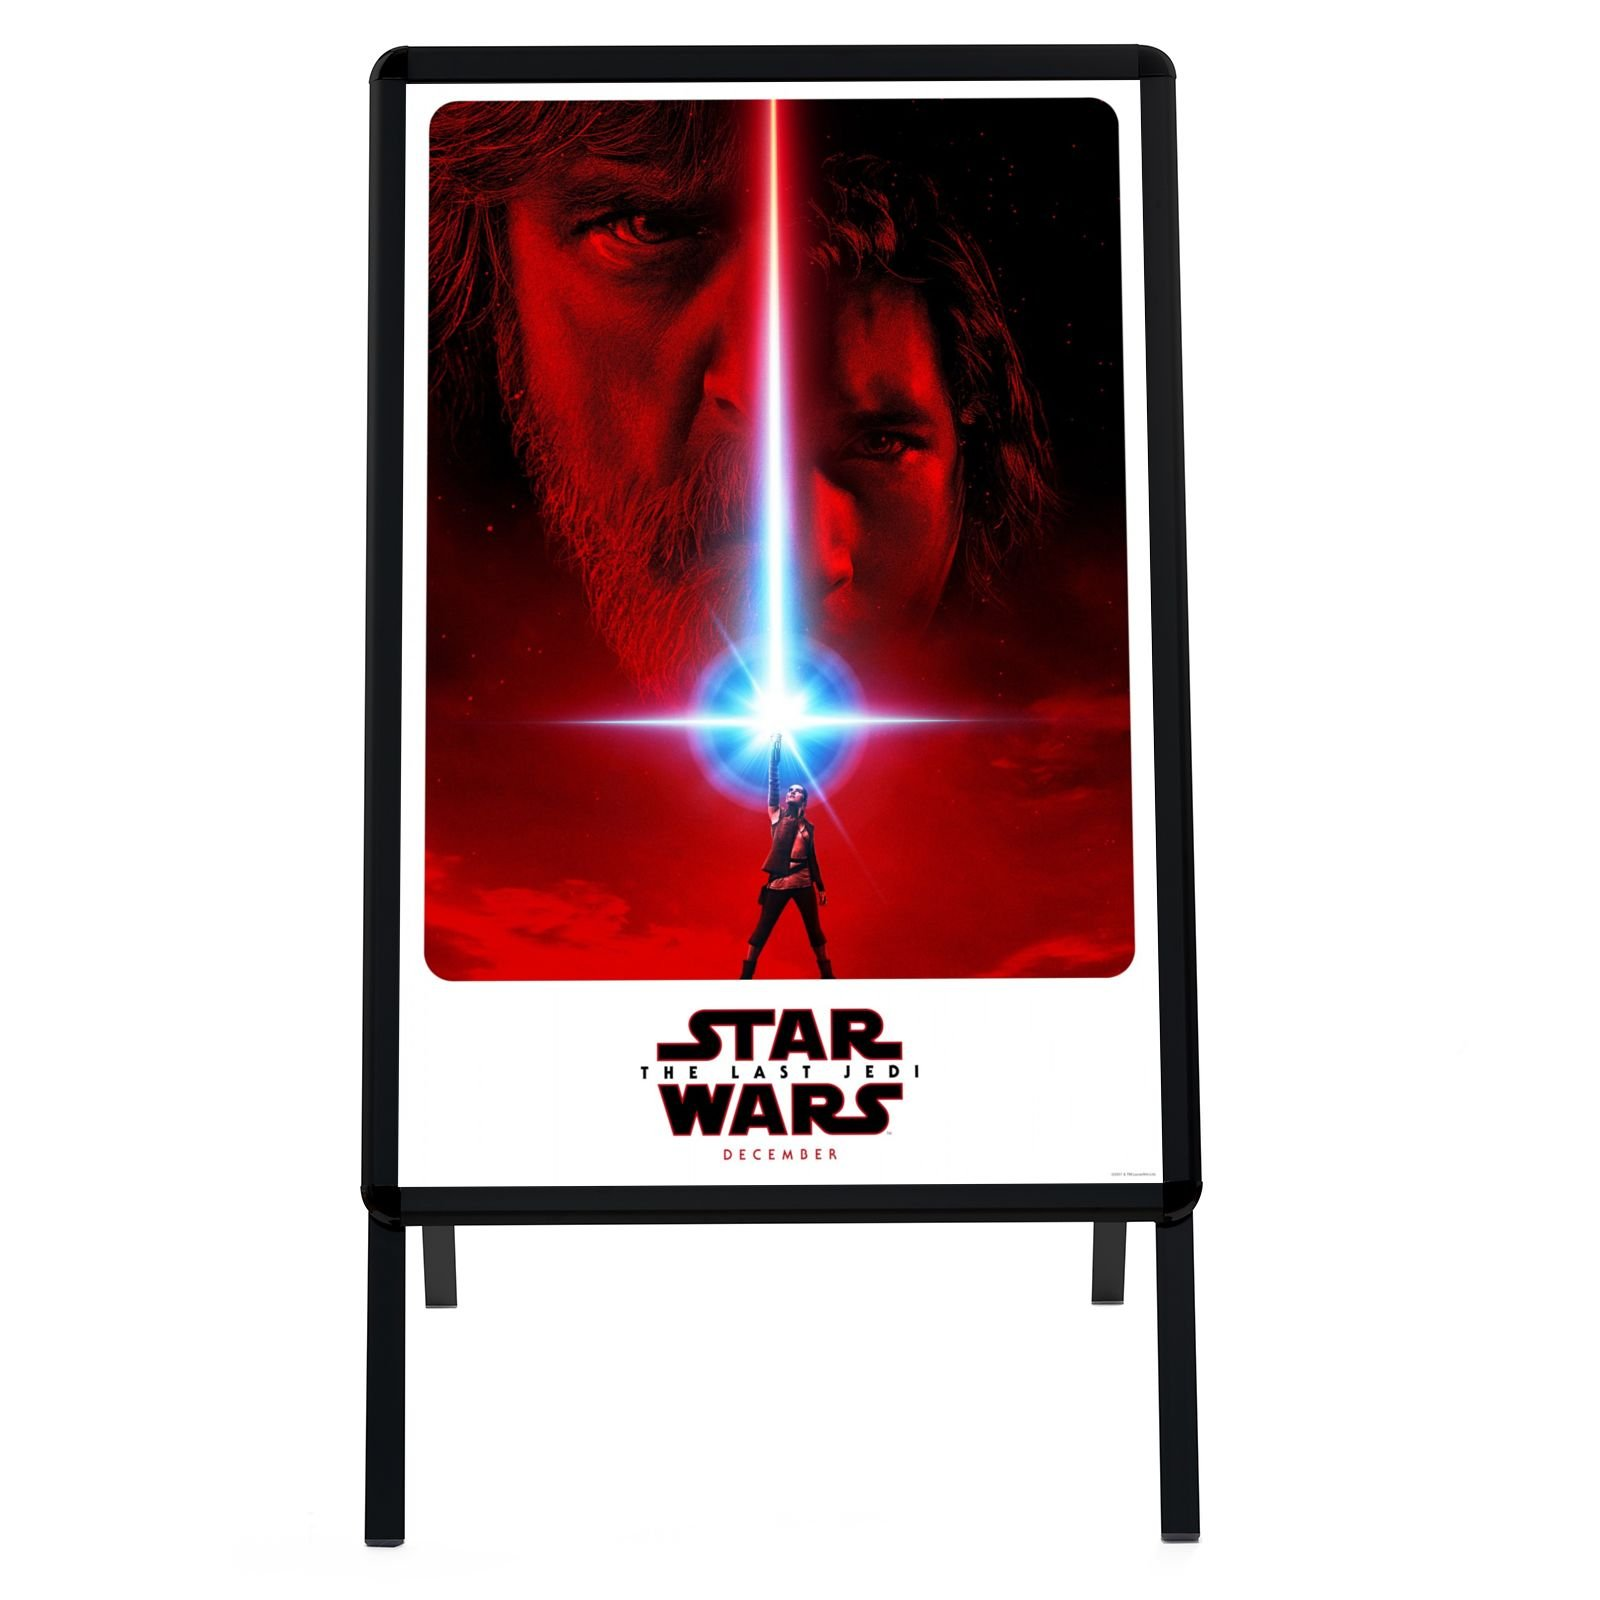 Black Sidewalk Sign A Board 24x36 Inches, Double-sided Water-Resistant Quick Change Snap Frame, 1.25'' SnapeZo Profile, Professional Series